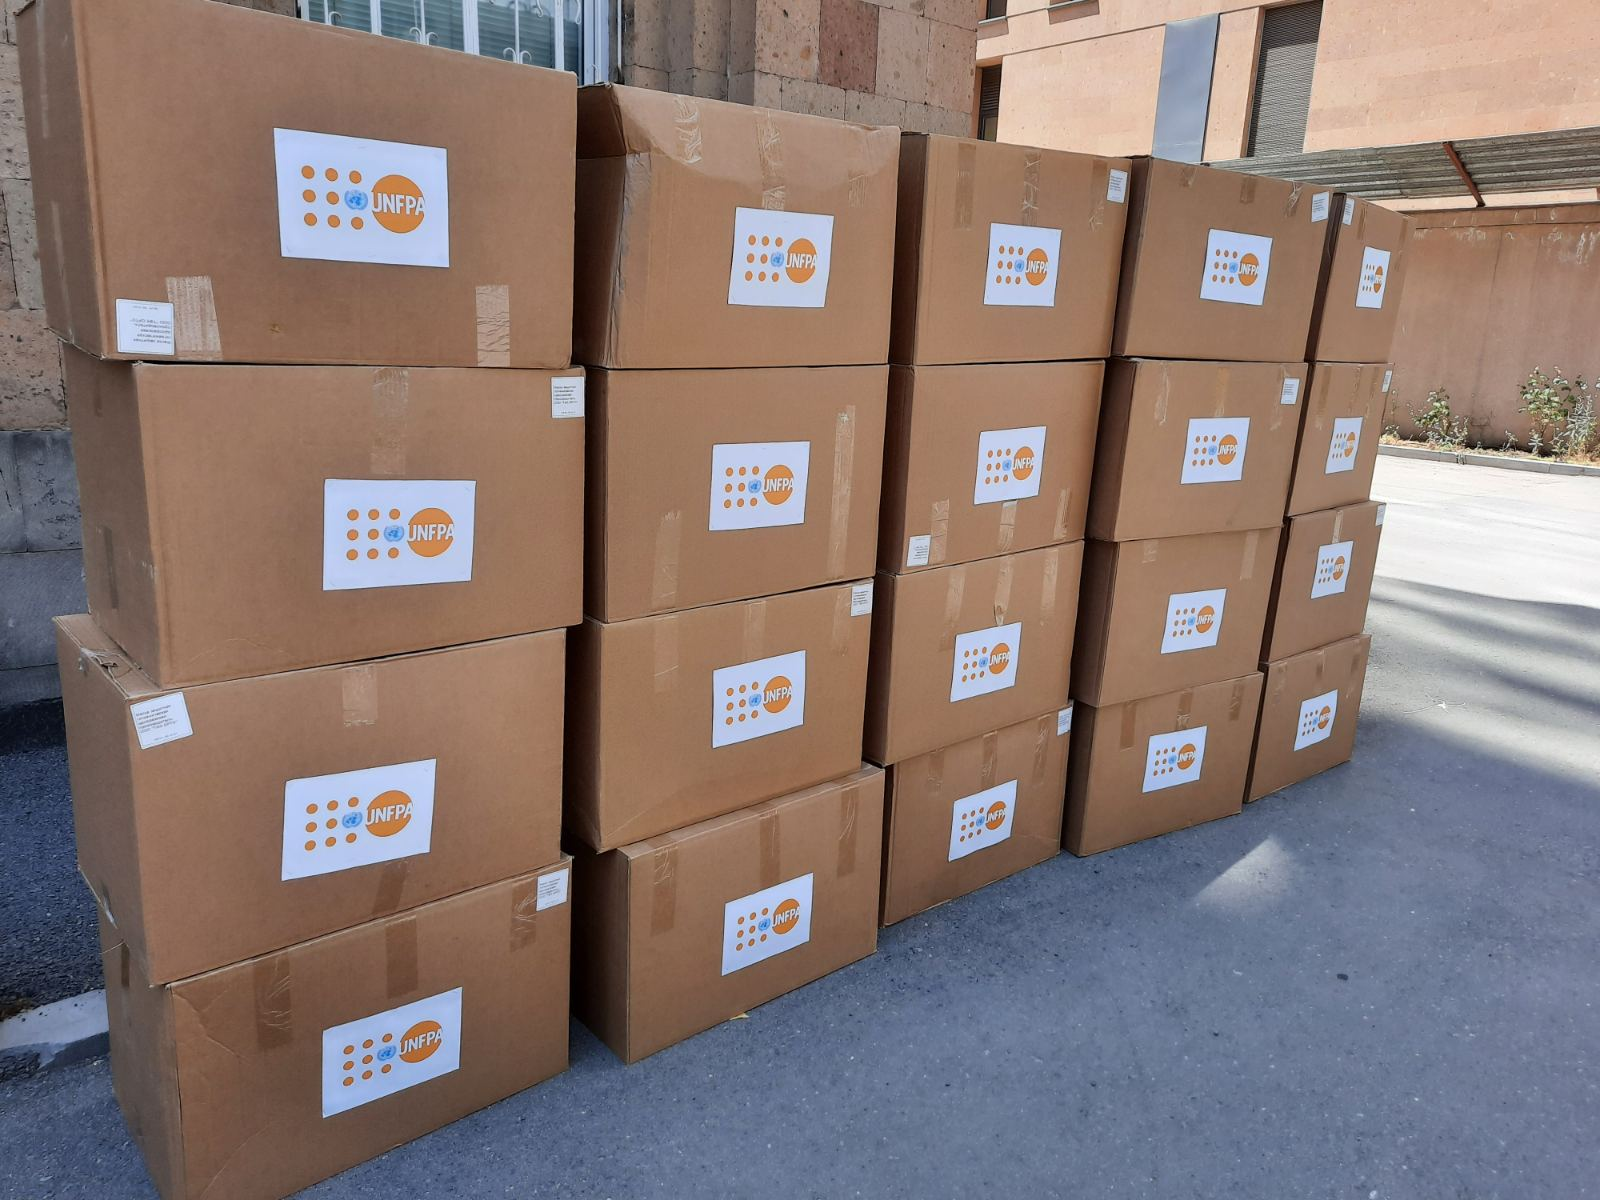 Boxes of PPE provided by UNFPA.